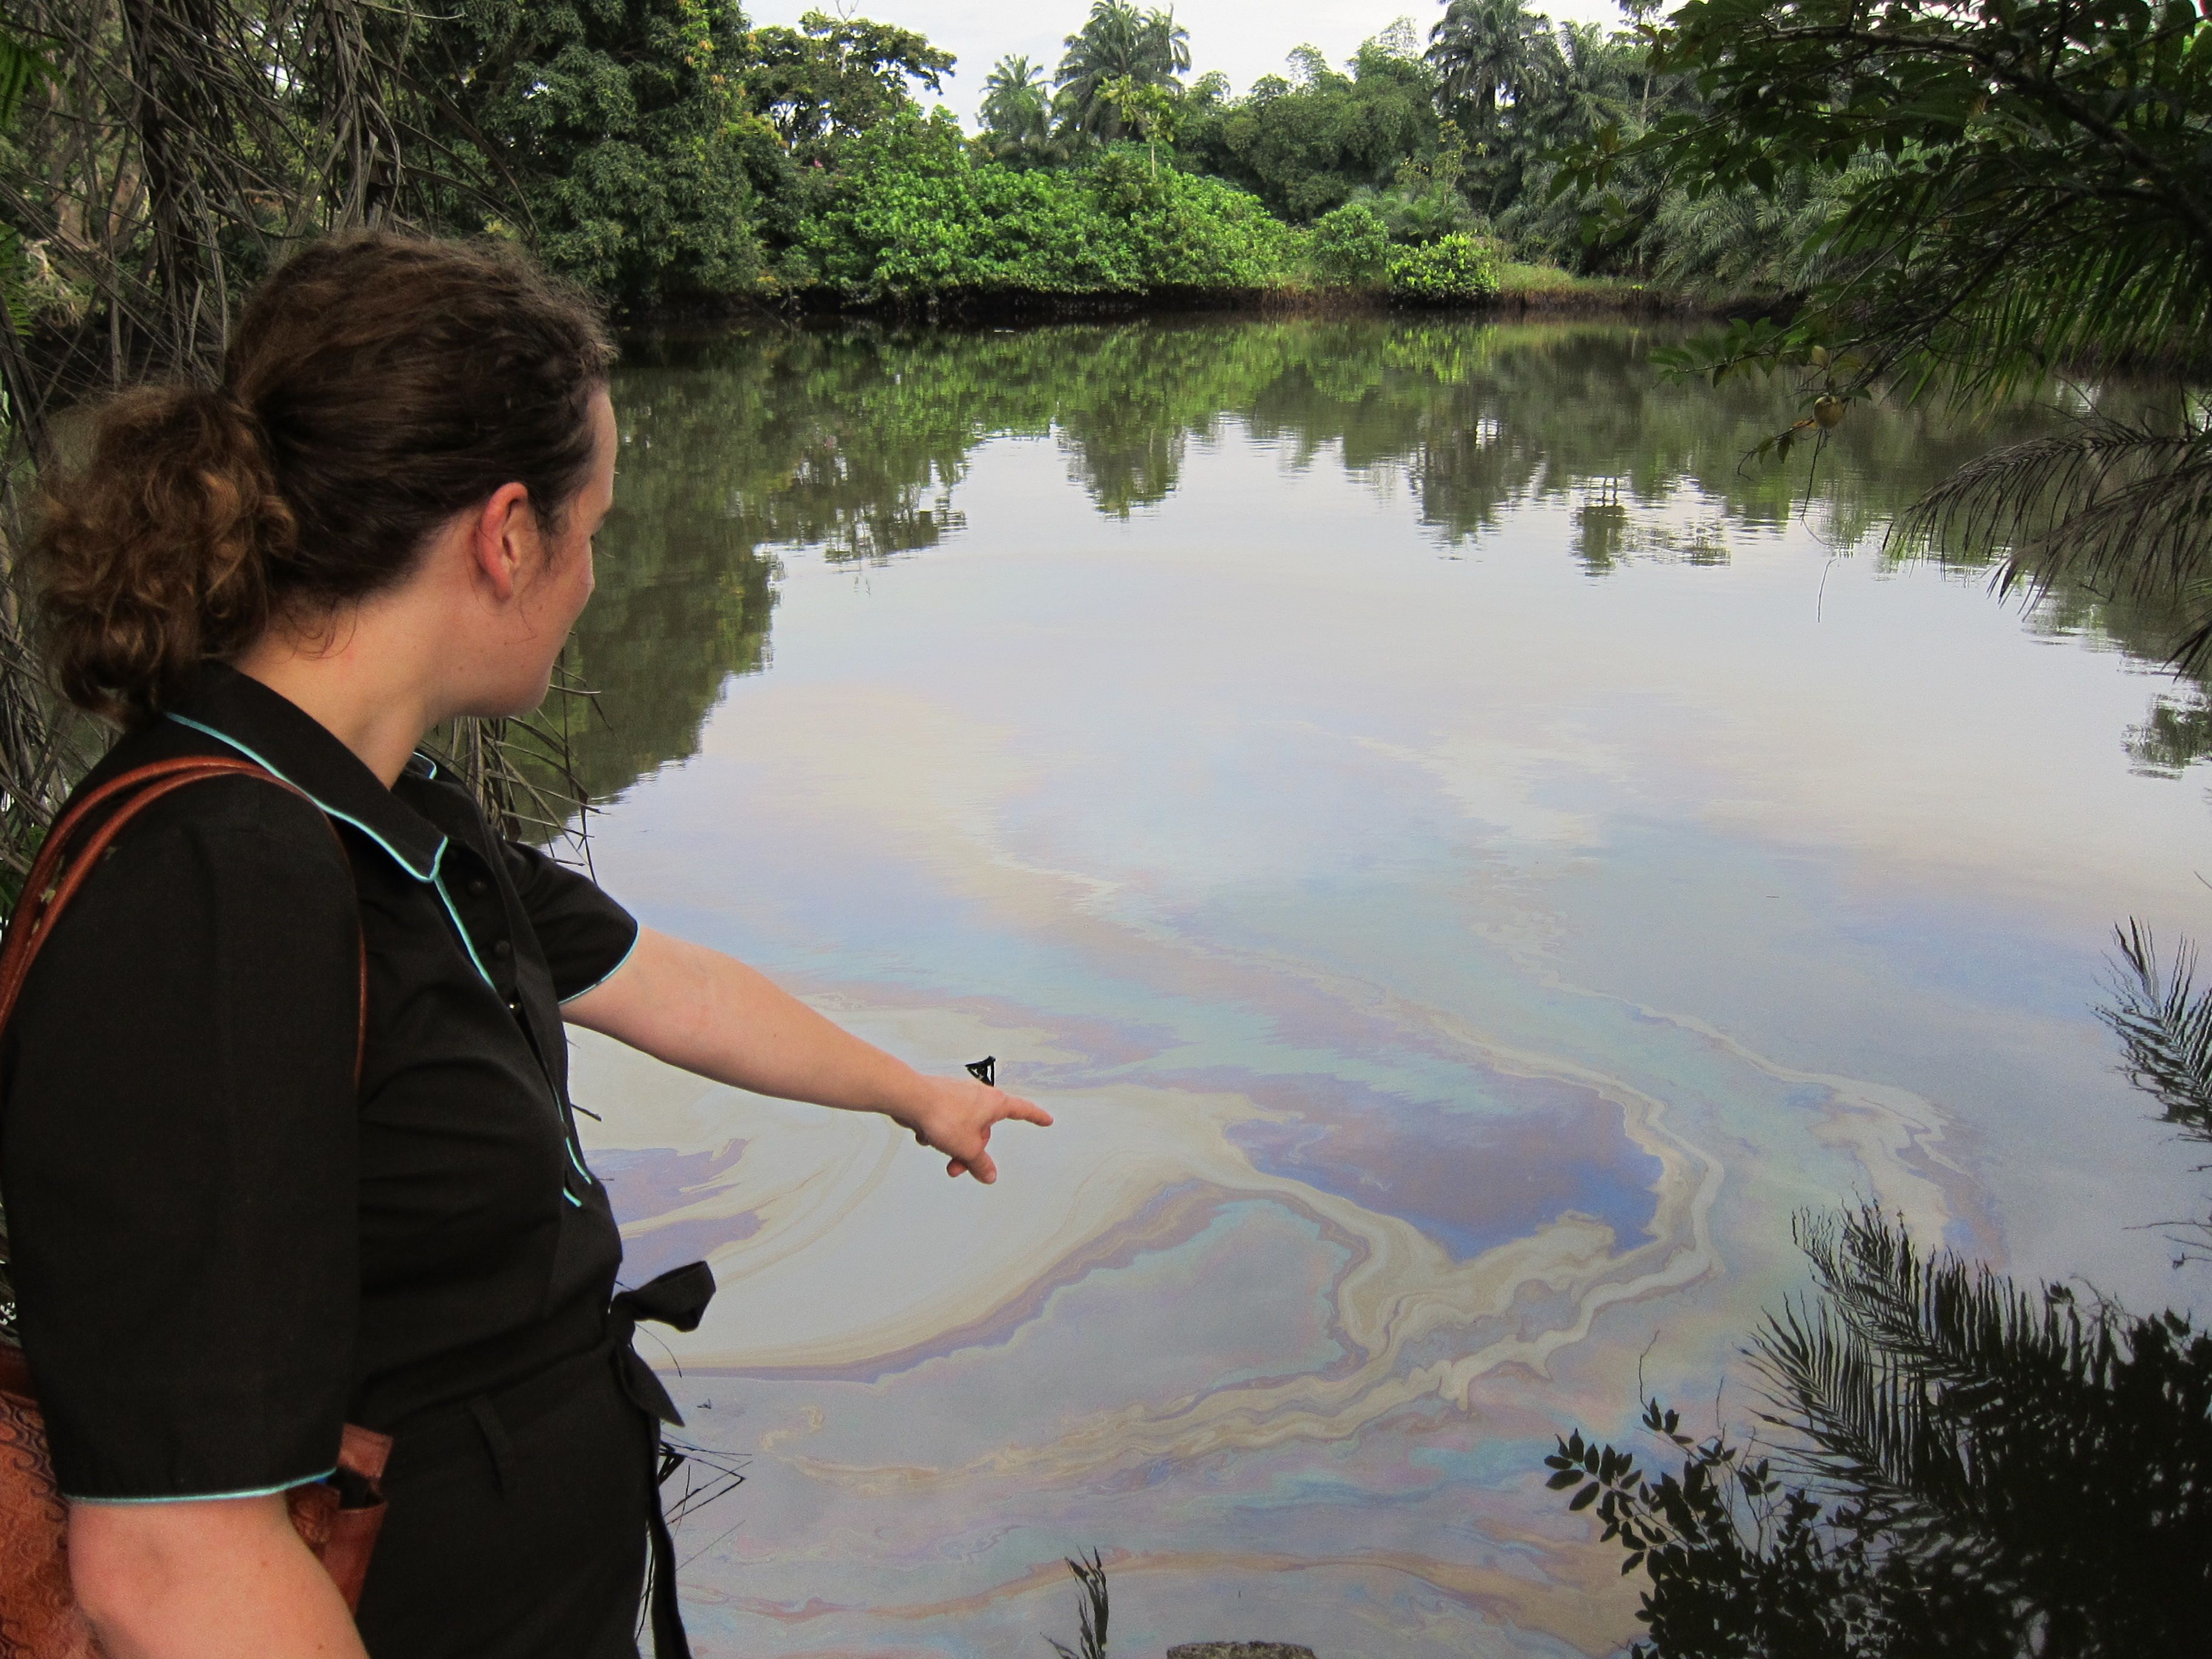 Amnesty International's Aster van Kregten is helping point the finger at oil pollution in the Niger Delta